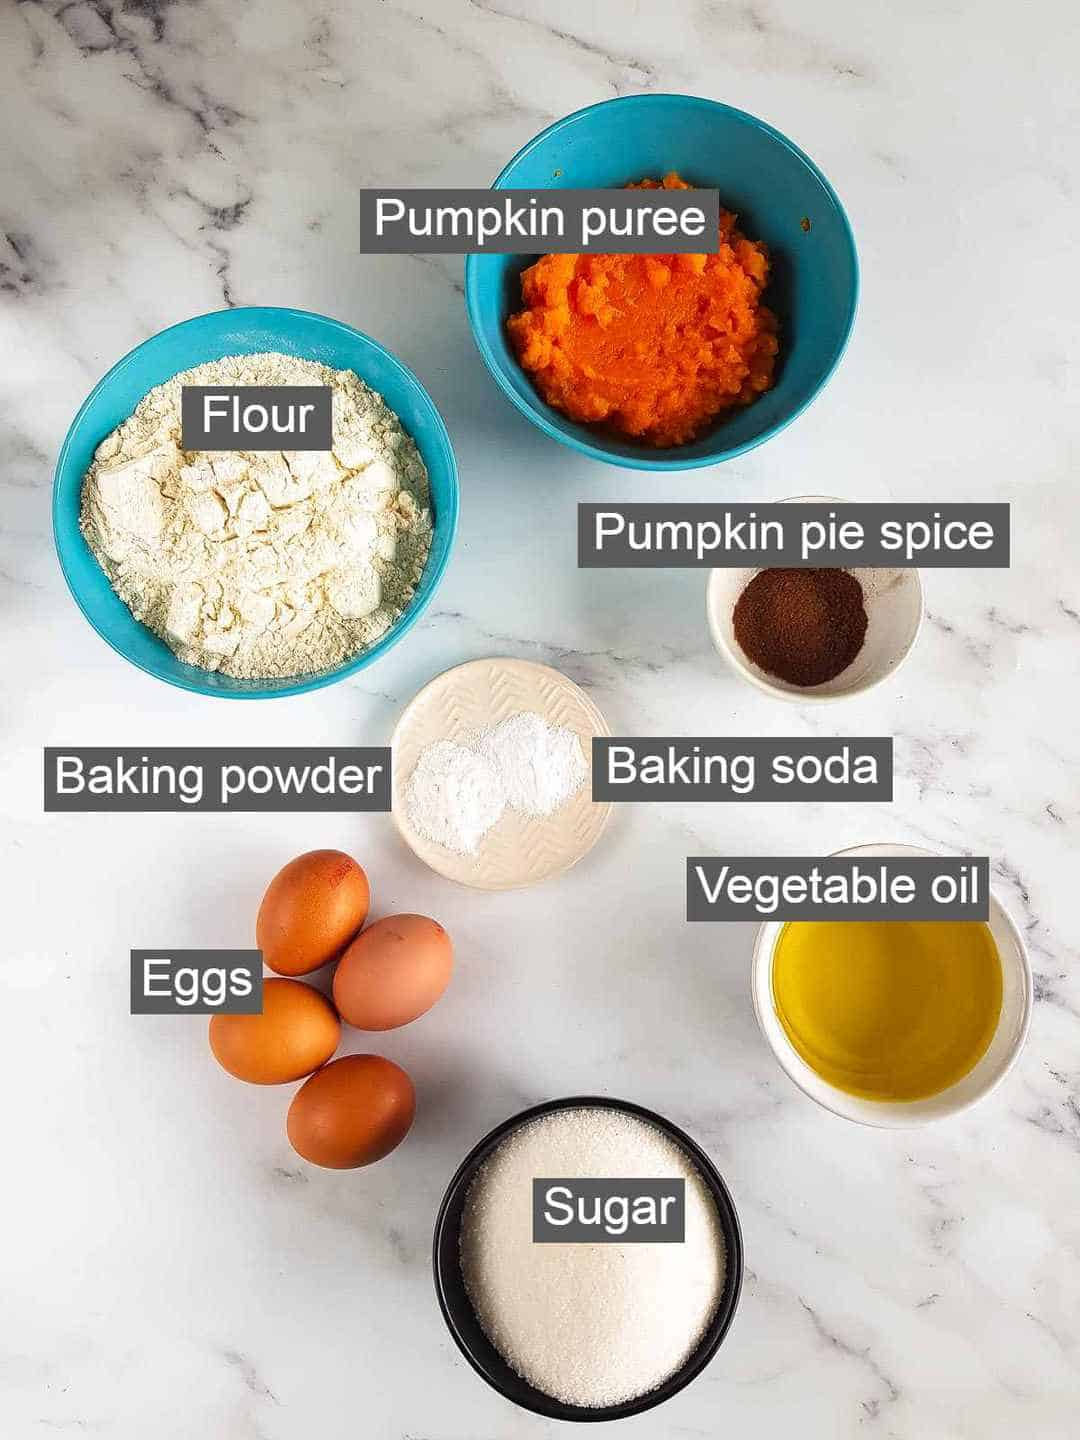 Ingredients needed for pumpkin spice cake laid out on a table.